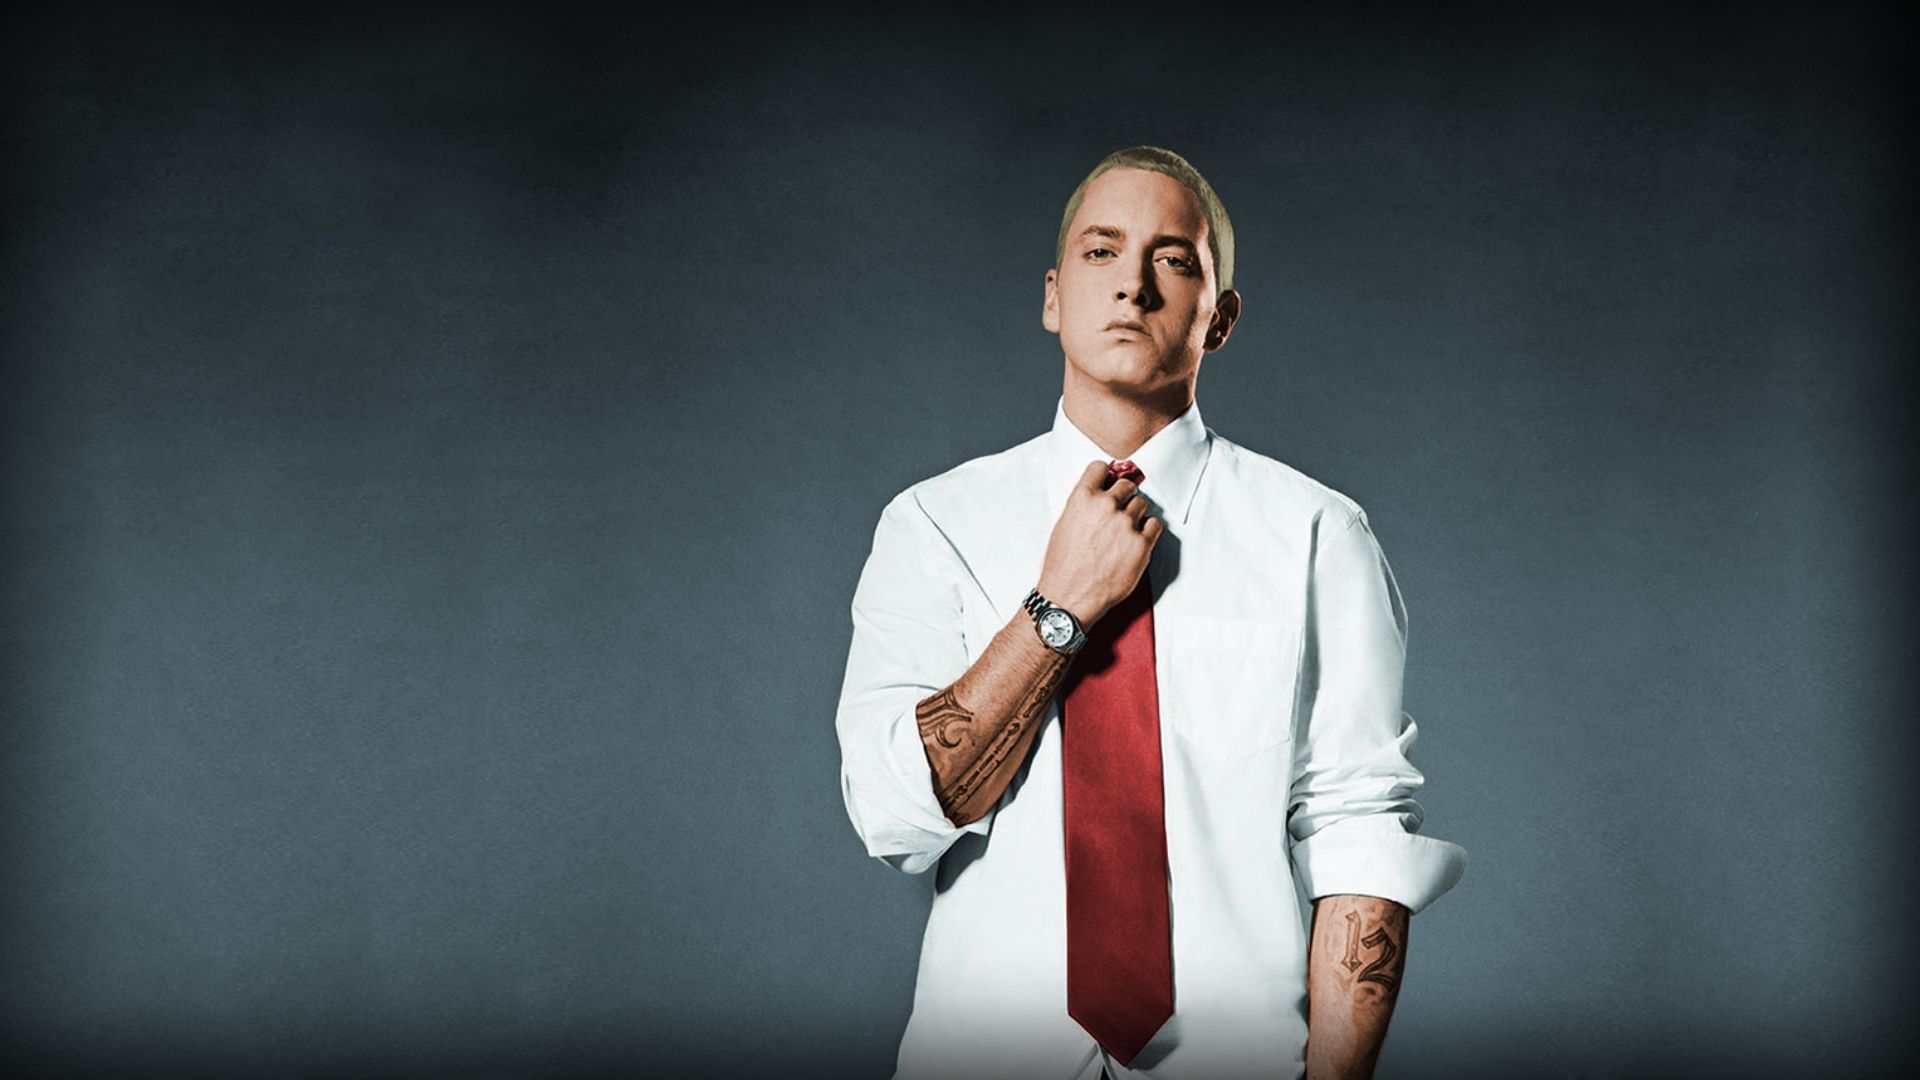 Full HD p Eminem Wallpapers HD, Desktop Backgrounds 1131